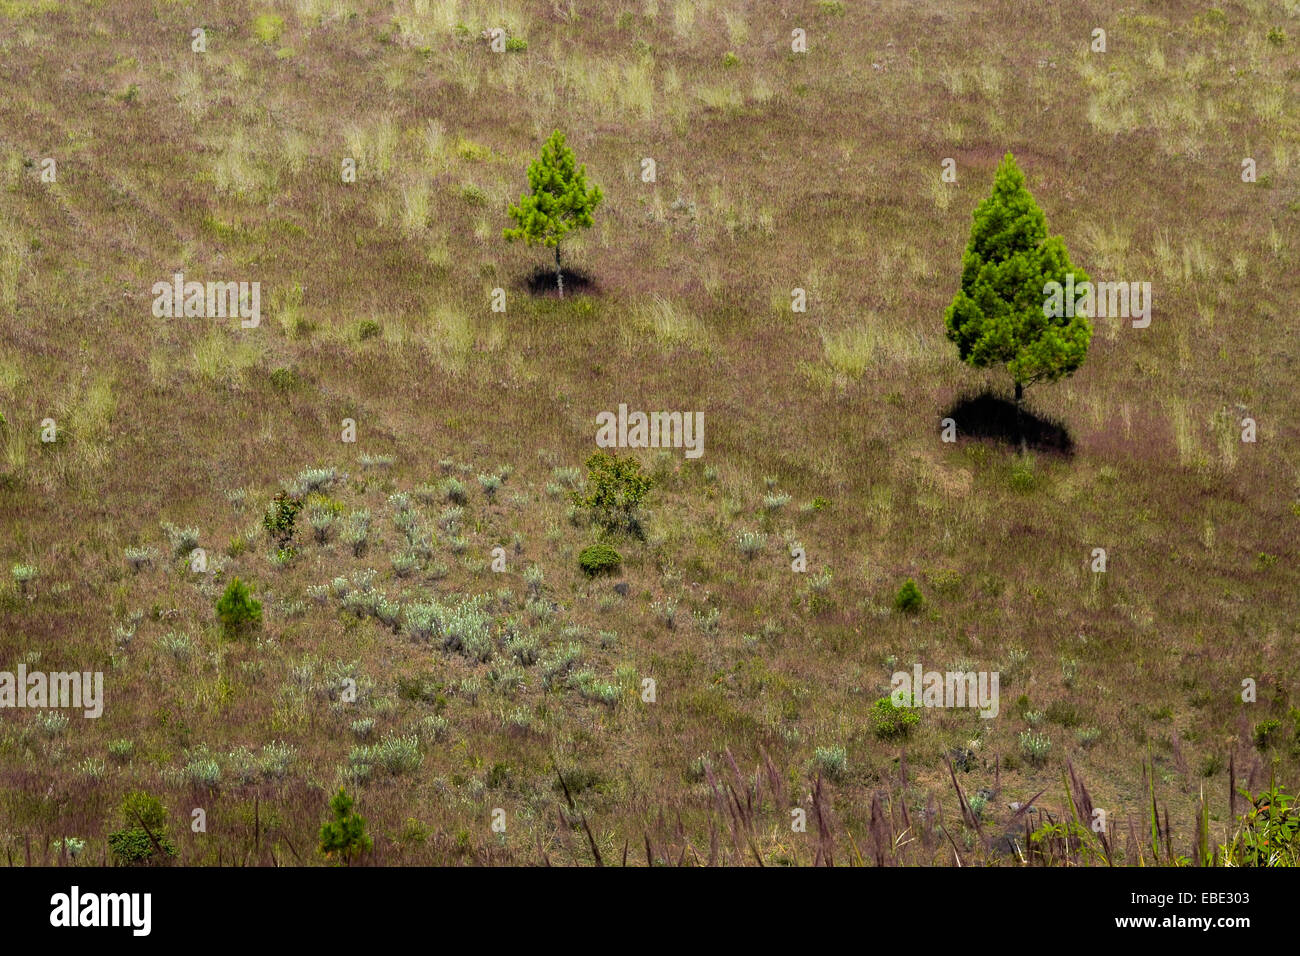 Spruces and edelweiss flowers on the caldera slope of Mount Guntur, Indonesia. - Stock Image